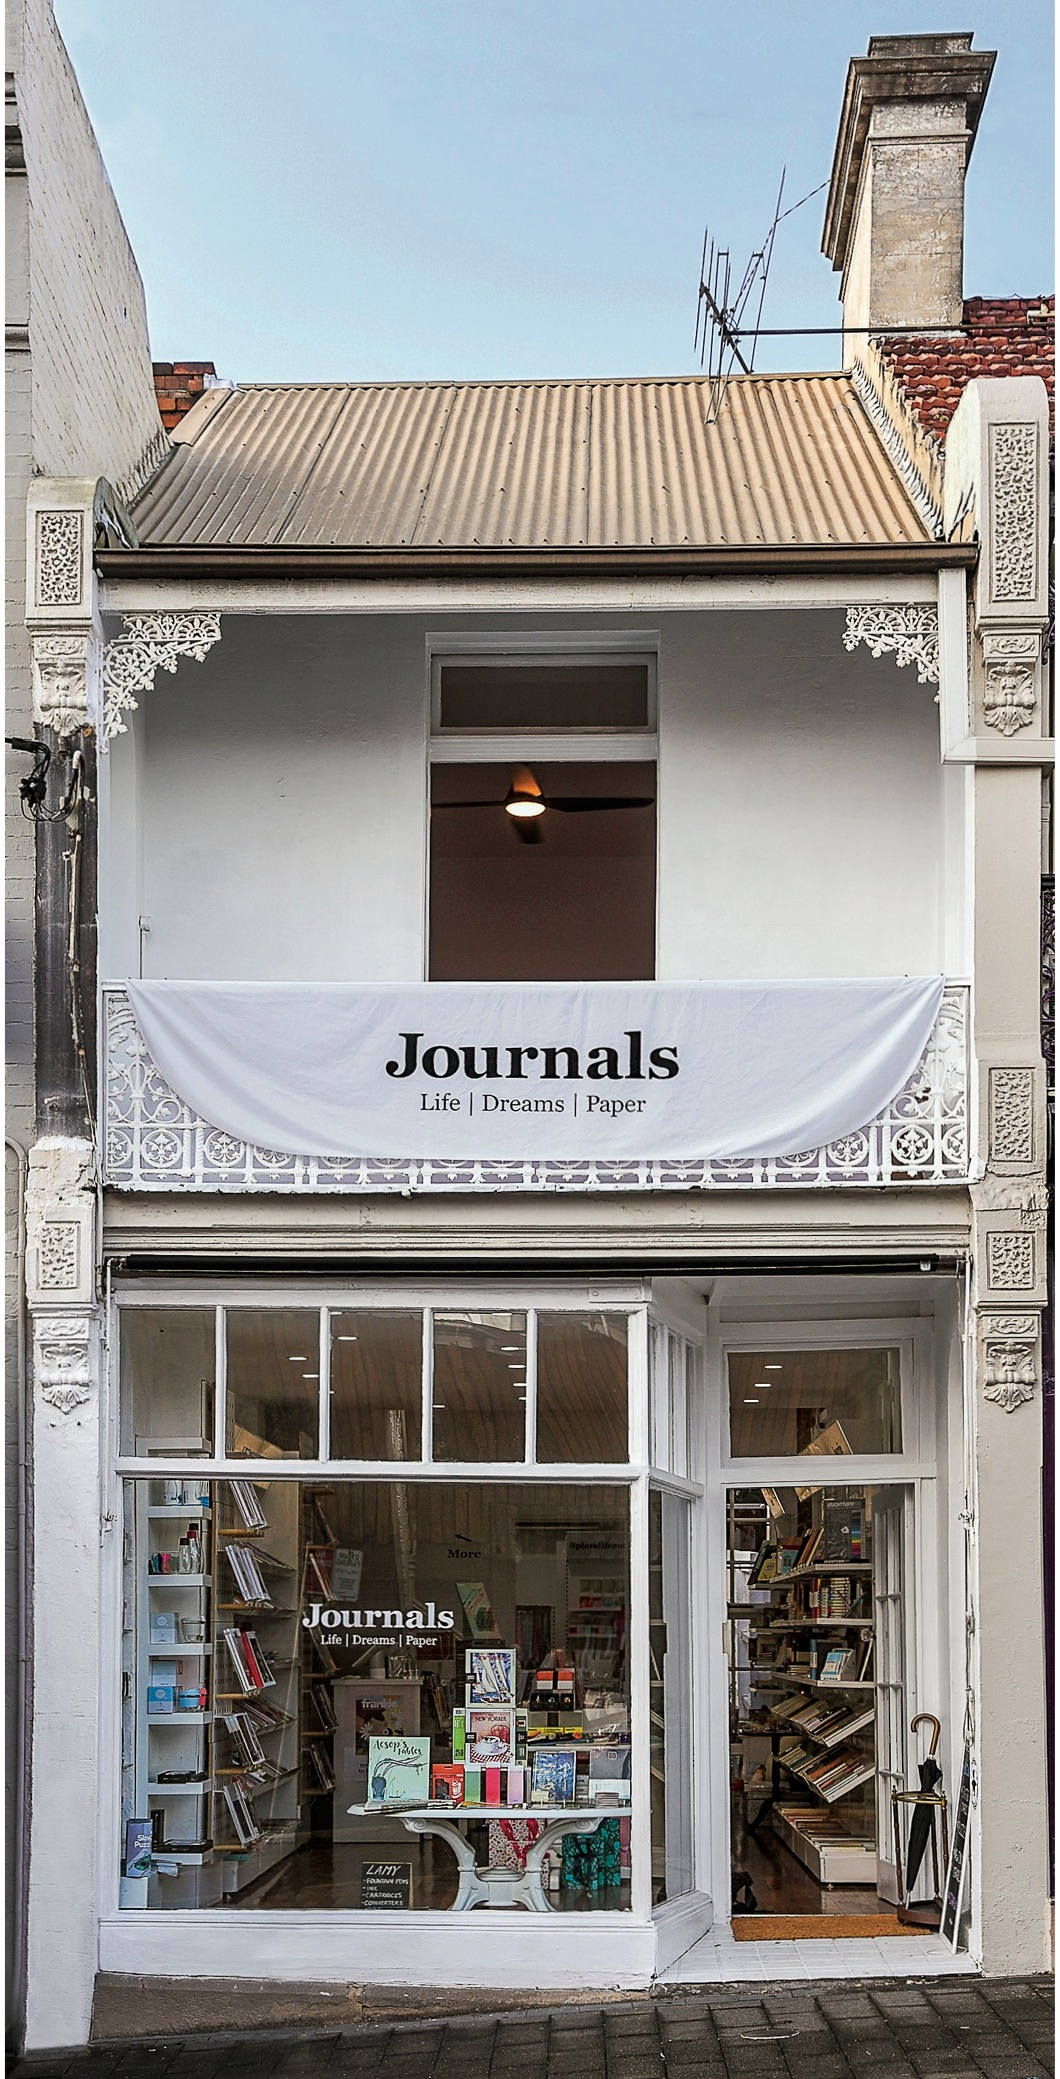 Journals Paddington.